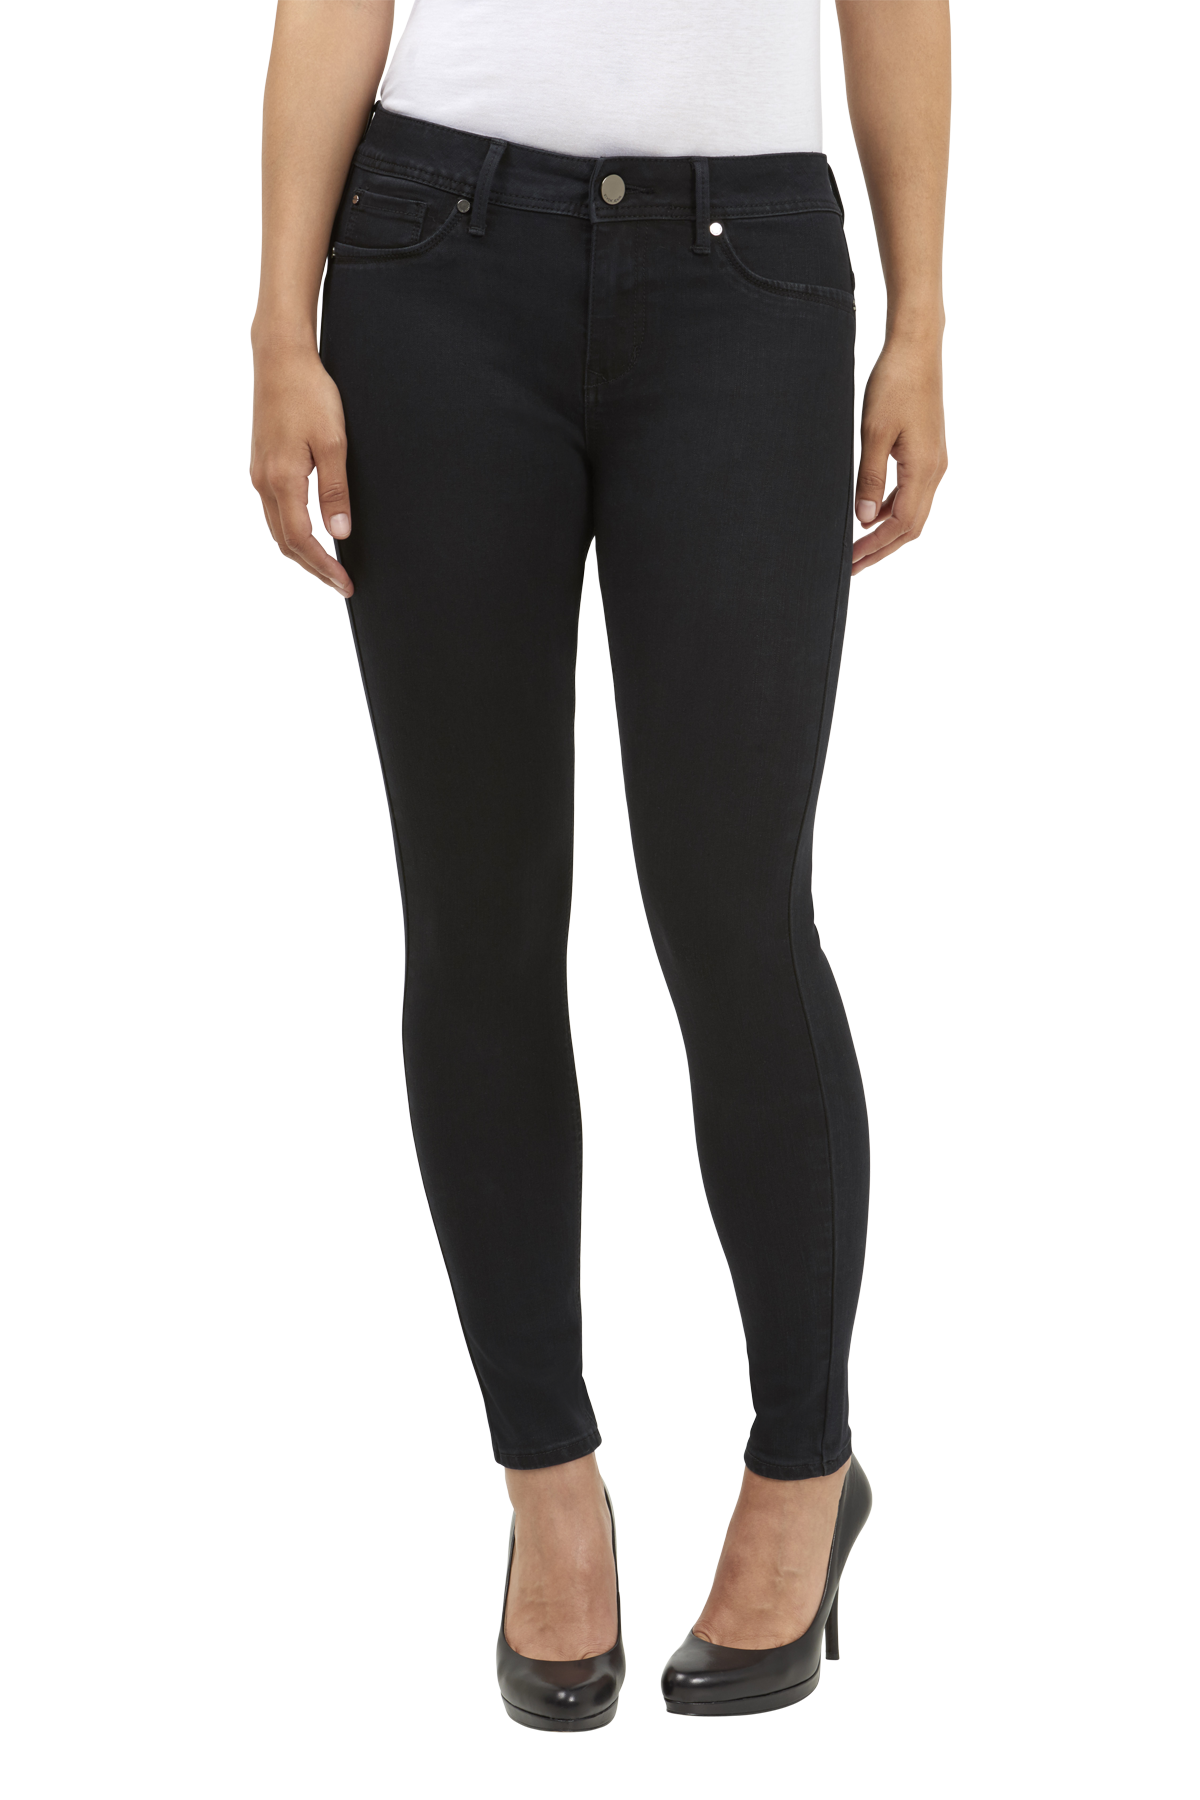 Seven7 Jeans 4-Way Stretch Legging